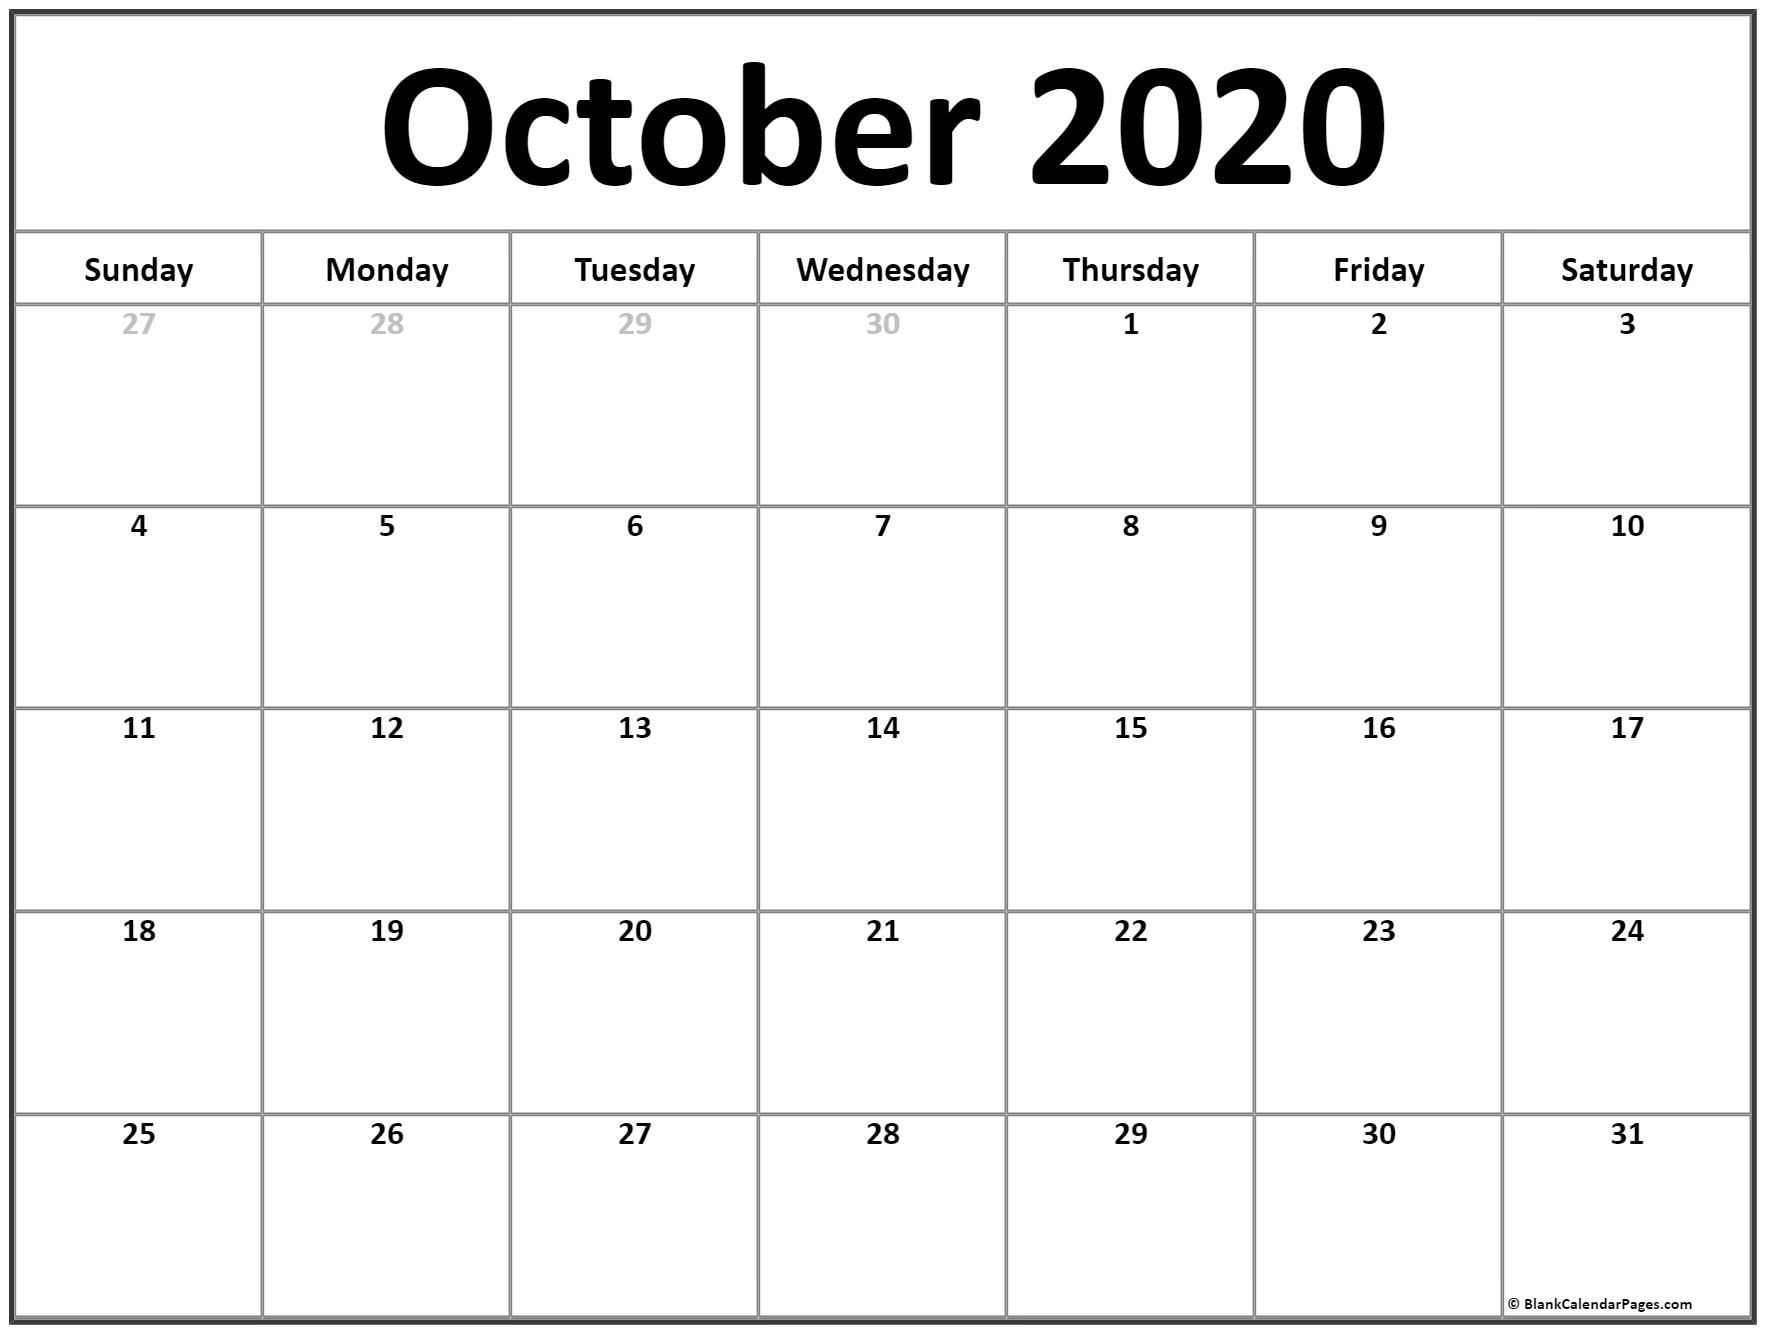 October 2020 Template - Wpa.wpart.co